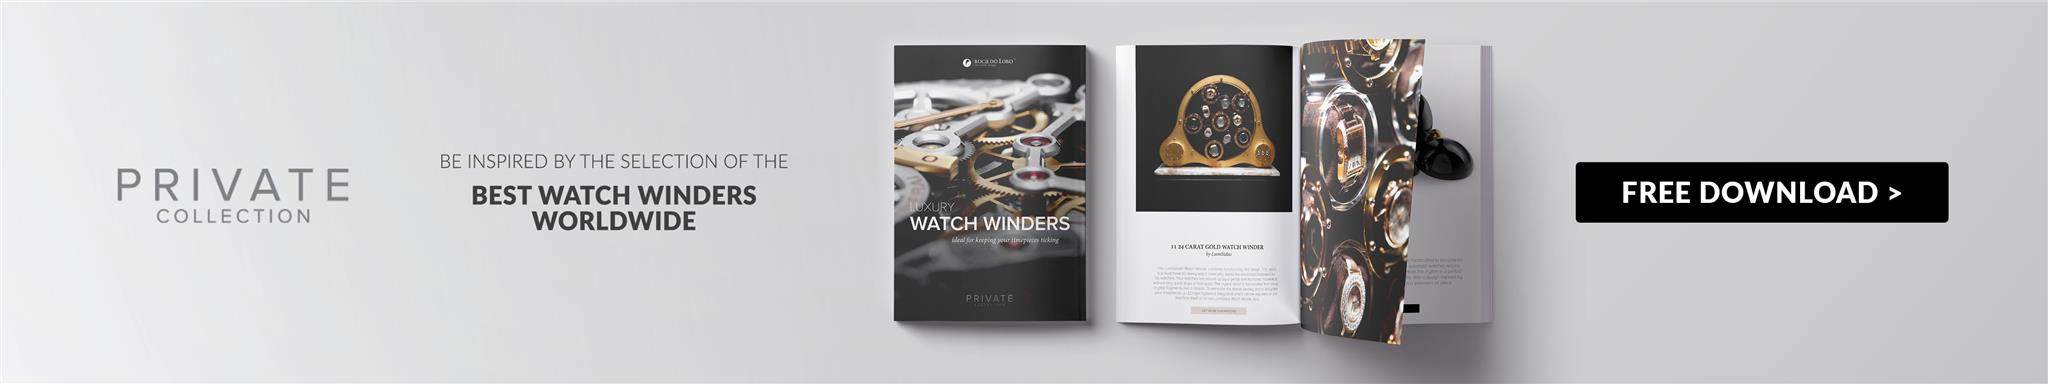 Watch Winders Ebook	Boca do Lobo baselworld 2019 The Best Of The Watch Industry at Baselworld 2019 best watch winders worldwide banner